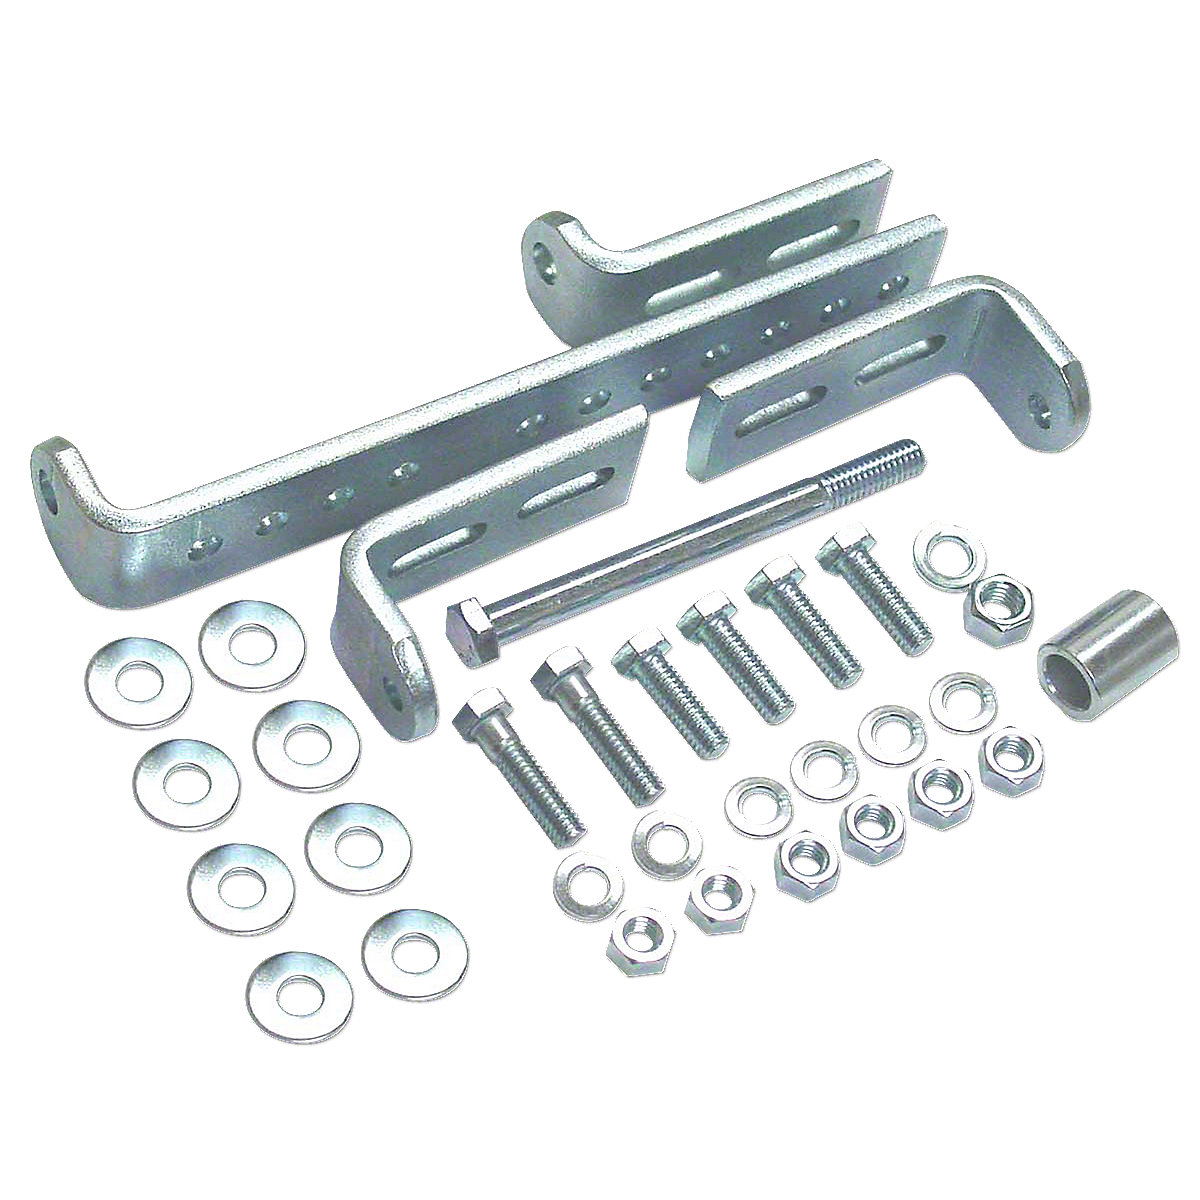 Universal Alternator Mounting Kit For Allis Chalmers Tractors.